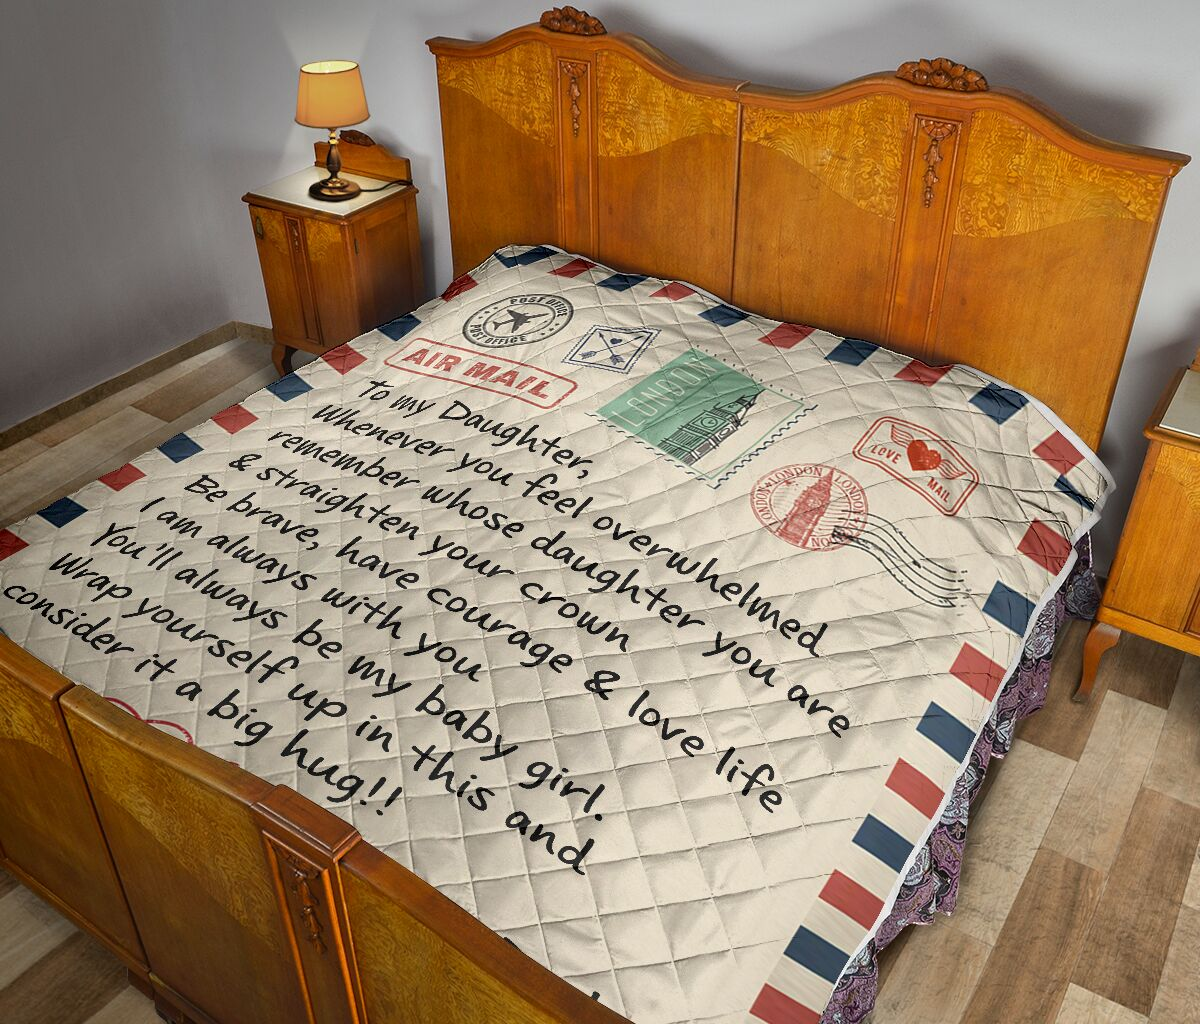 Letter air mail to my daughter love dad quilt